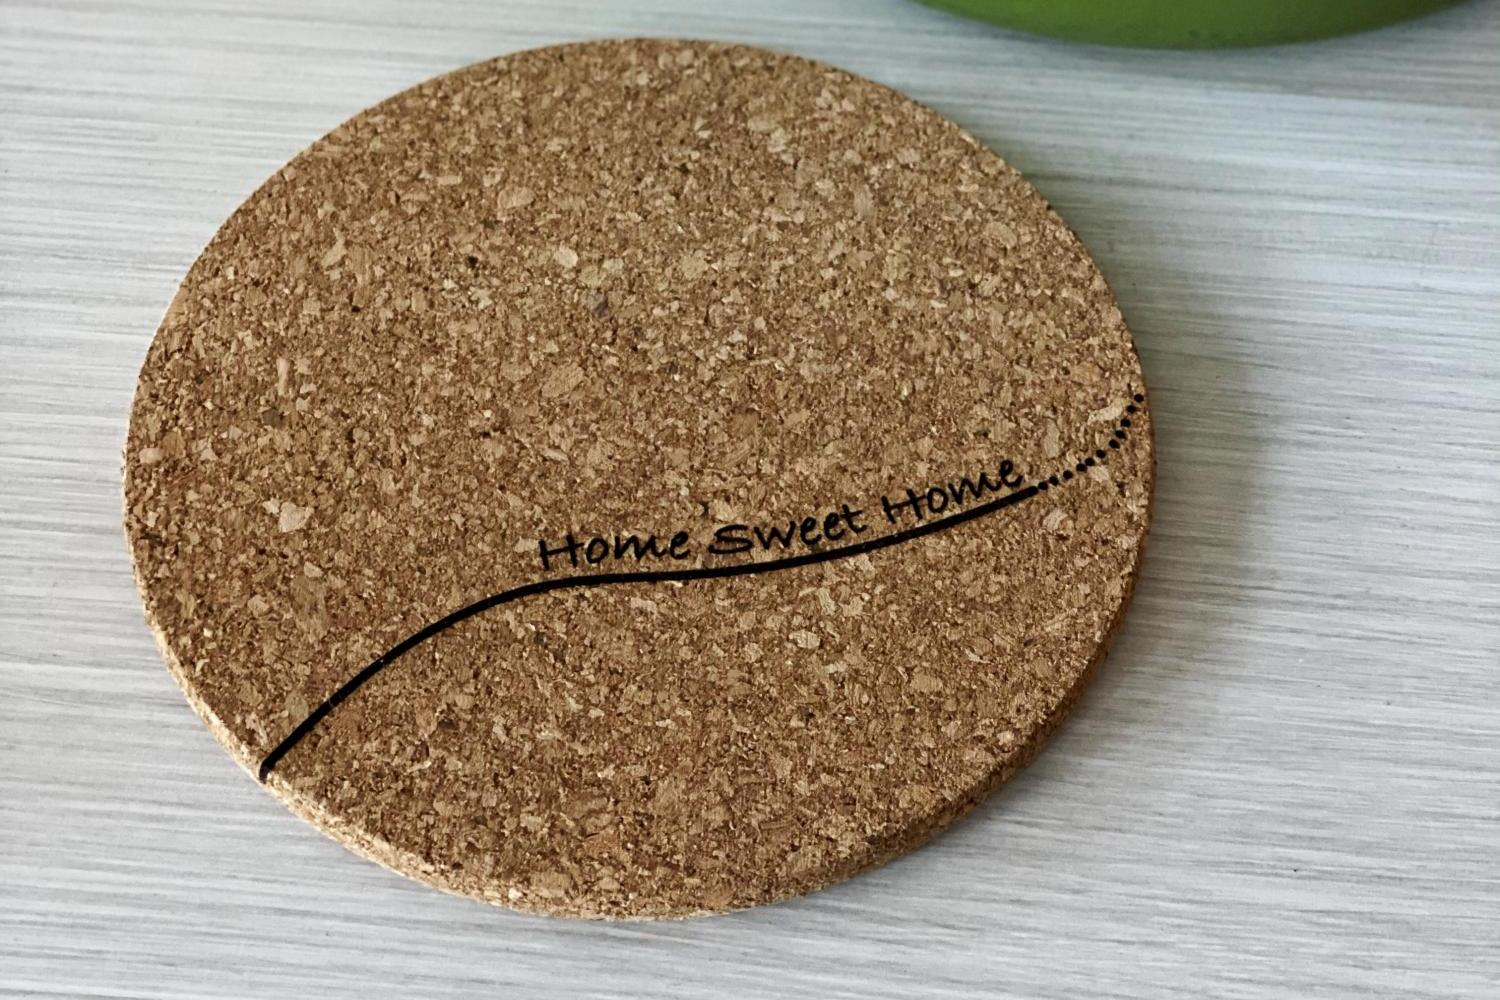 trivet with home sweet home on it